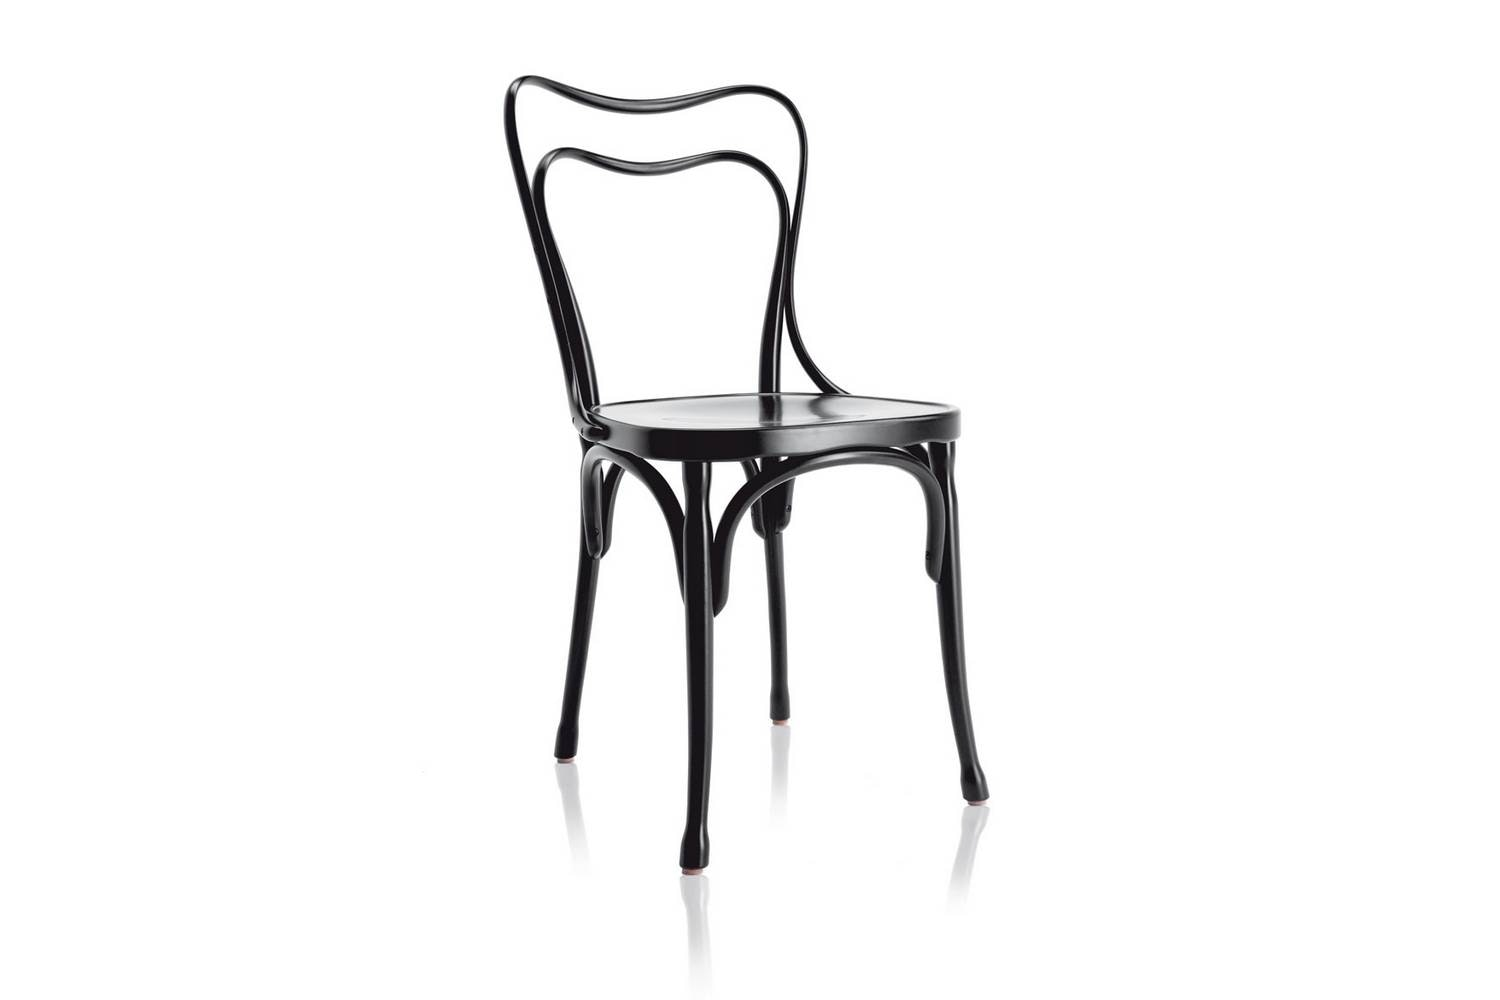 Loos Cafe Museum Chair by Adolf Loos for Wiener GTV Design